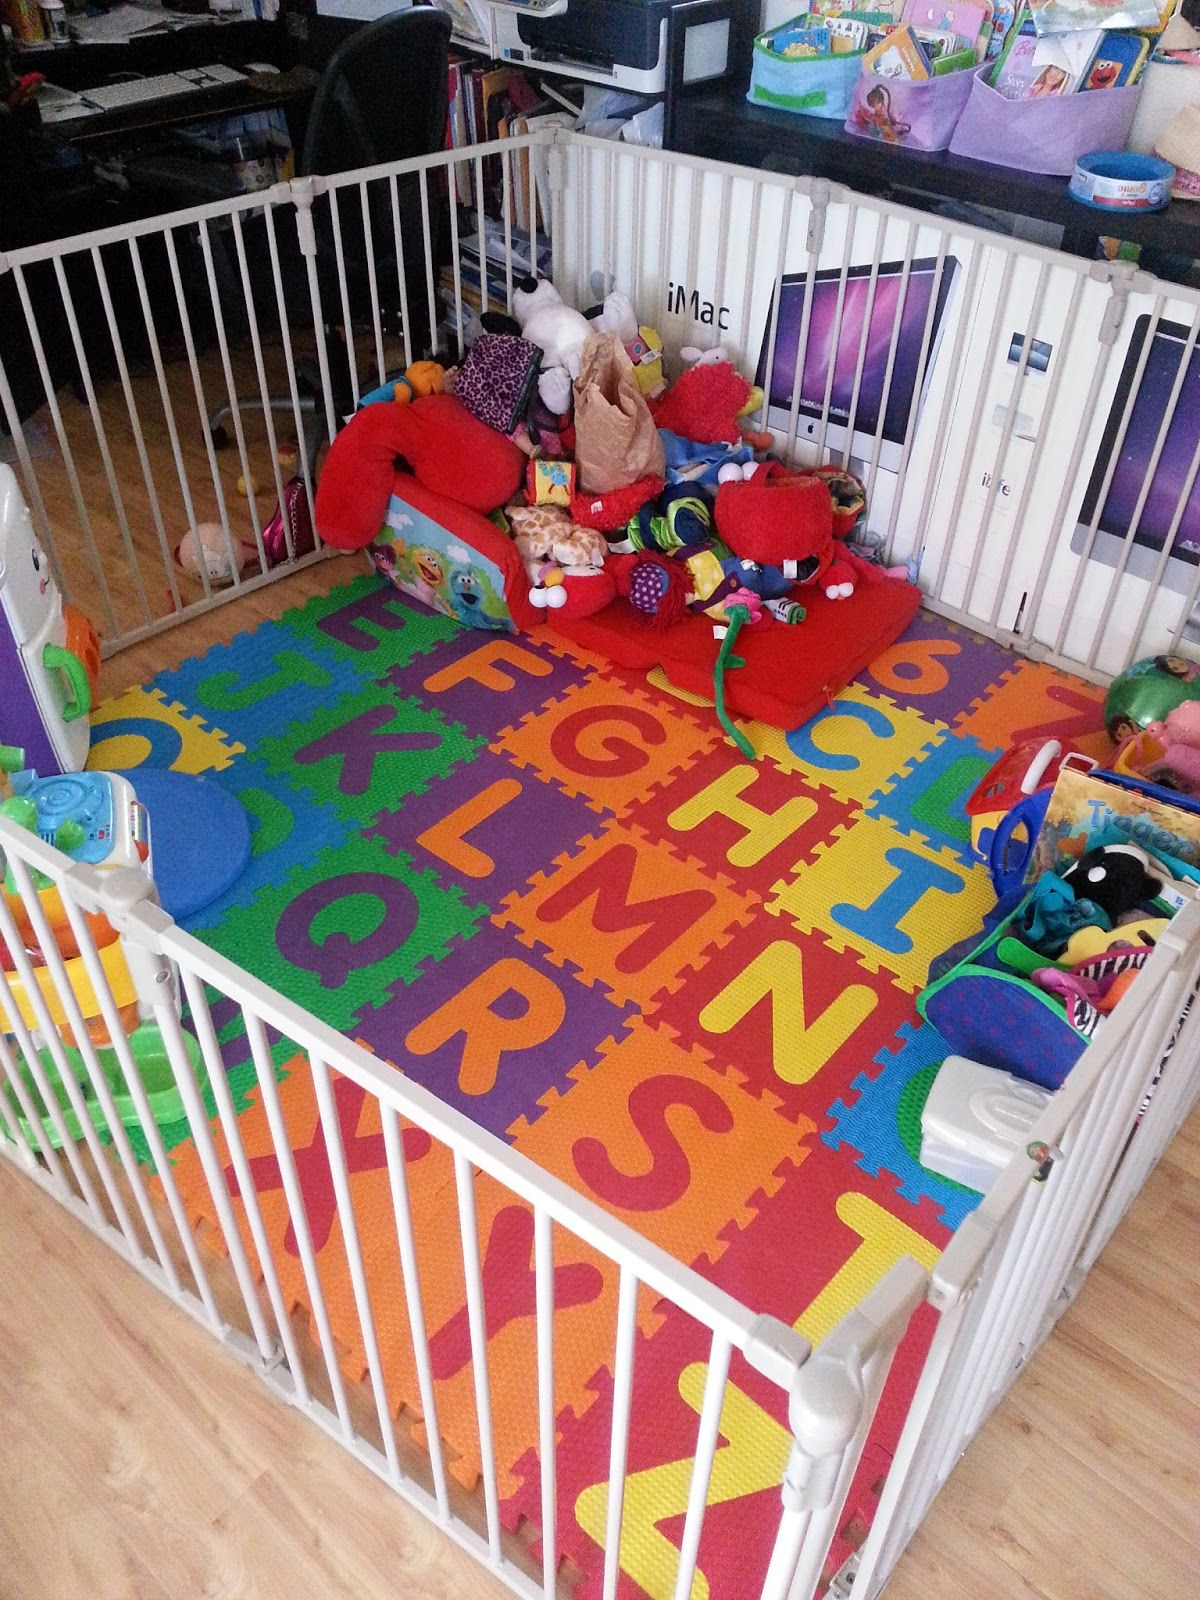 The Play Area Containing The Kiddie Tornado Baby